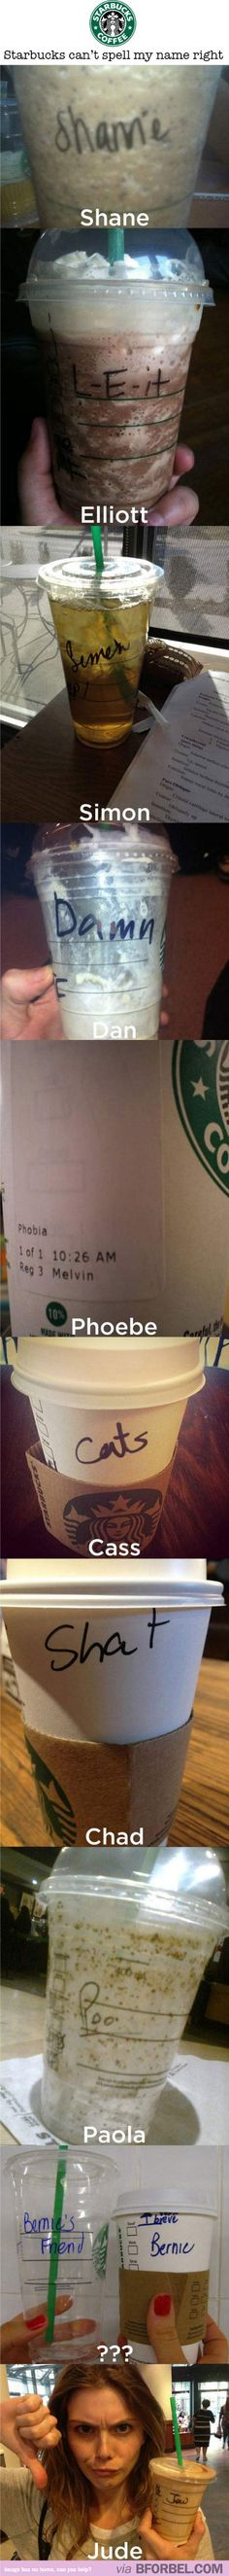 Starbucks can't spell names right…